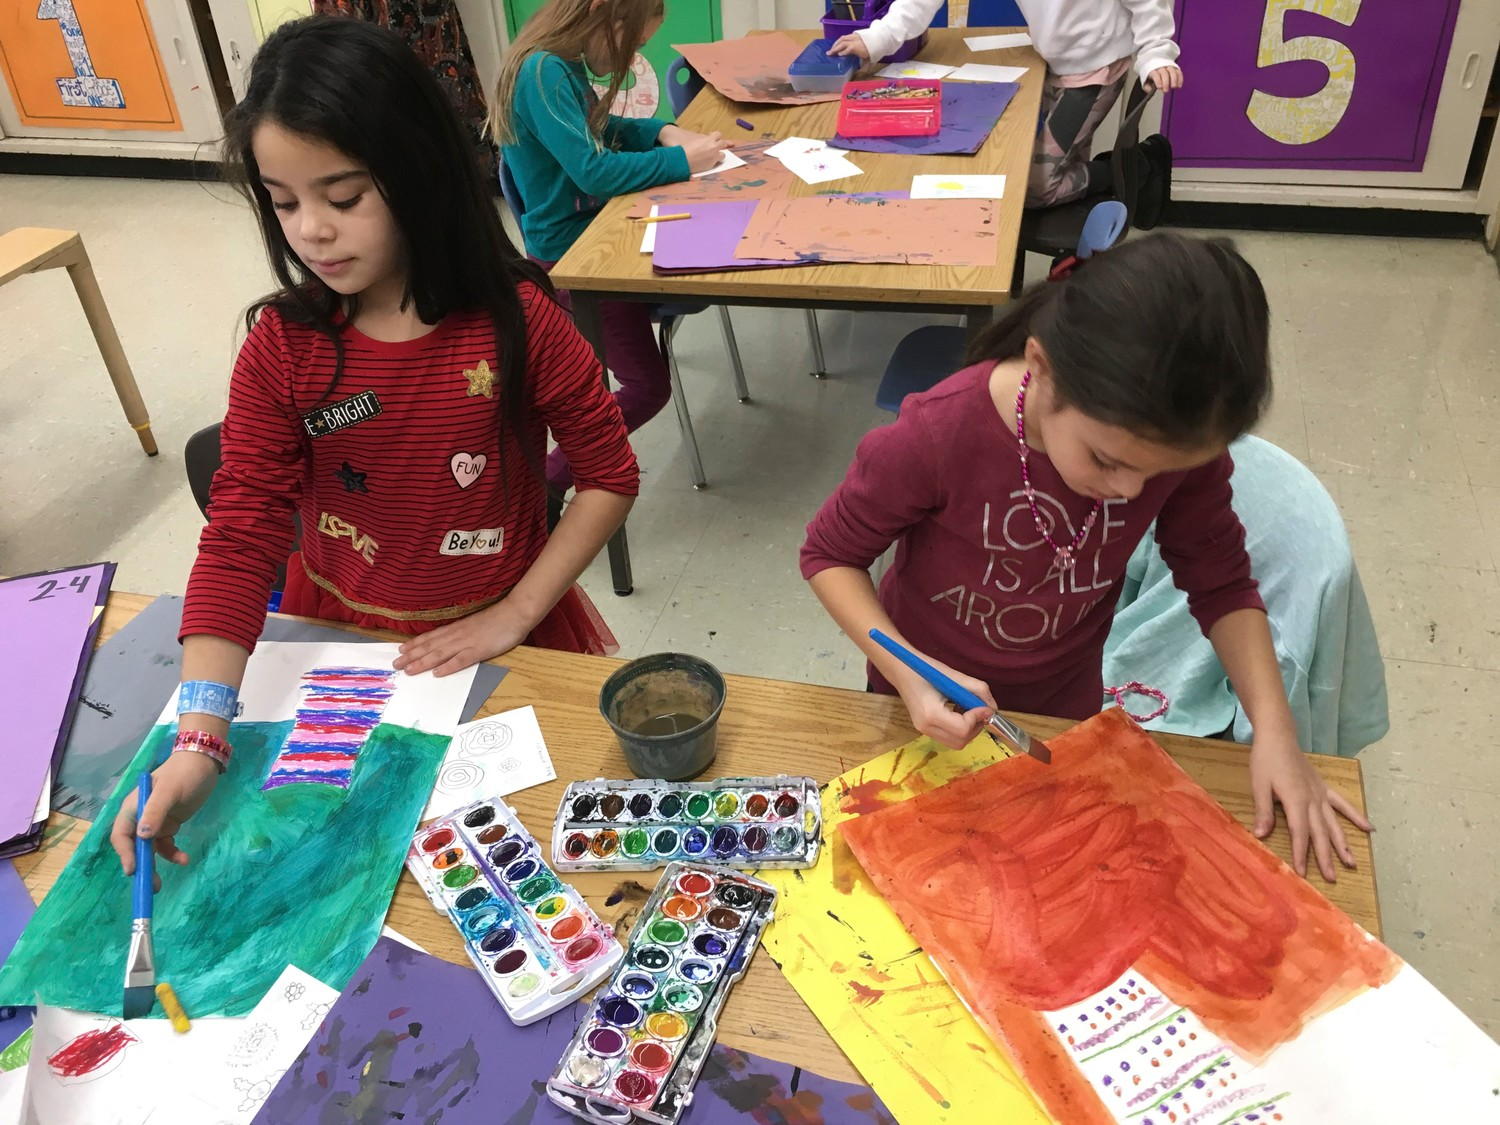 Second-graders Anny Hernandez, left, and Layla Raposo painted Van Gogh-style artwork in teacher Jamie LaSota's class during Seaford Manor Elementary School's International Week.